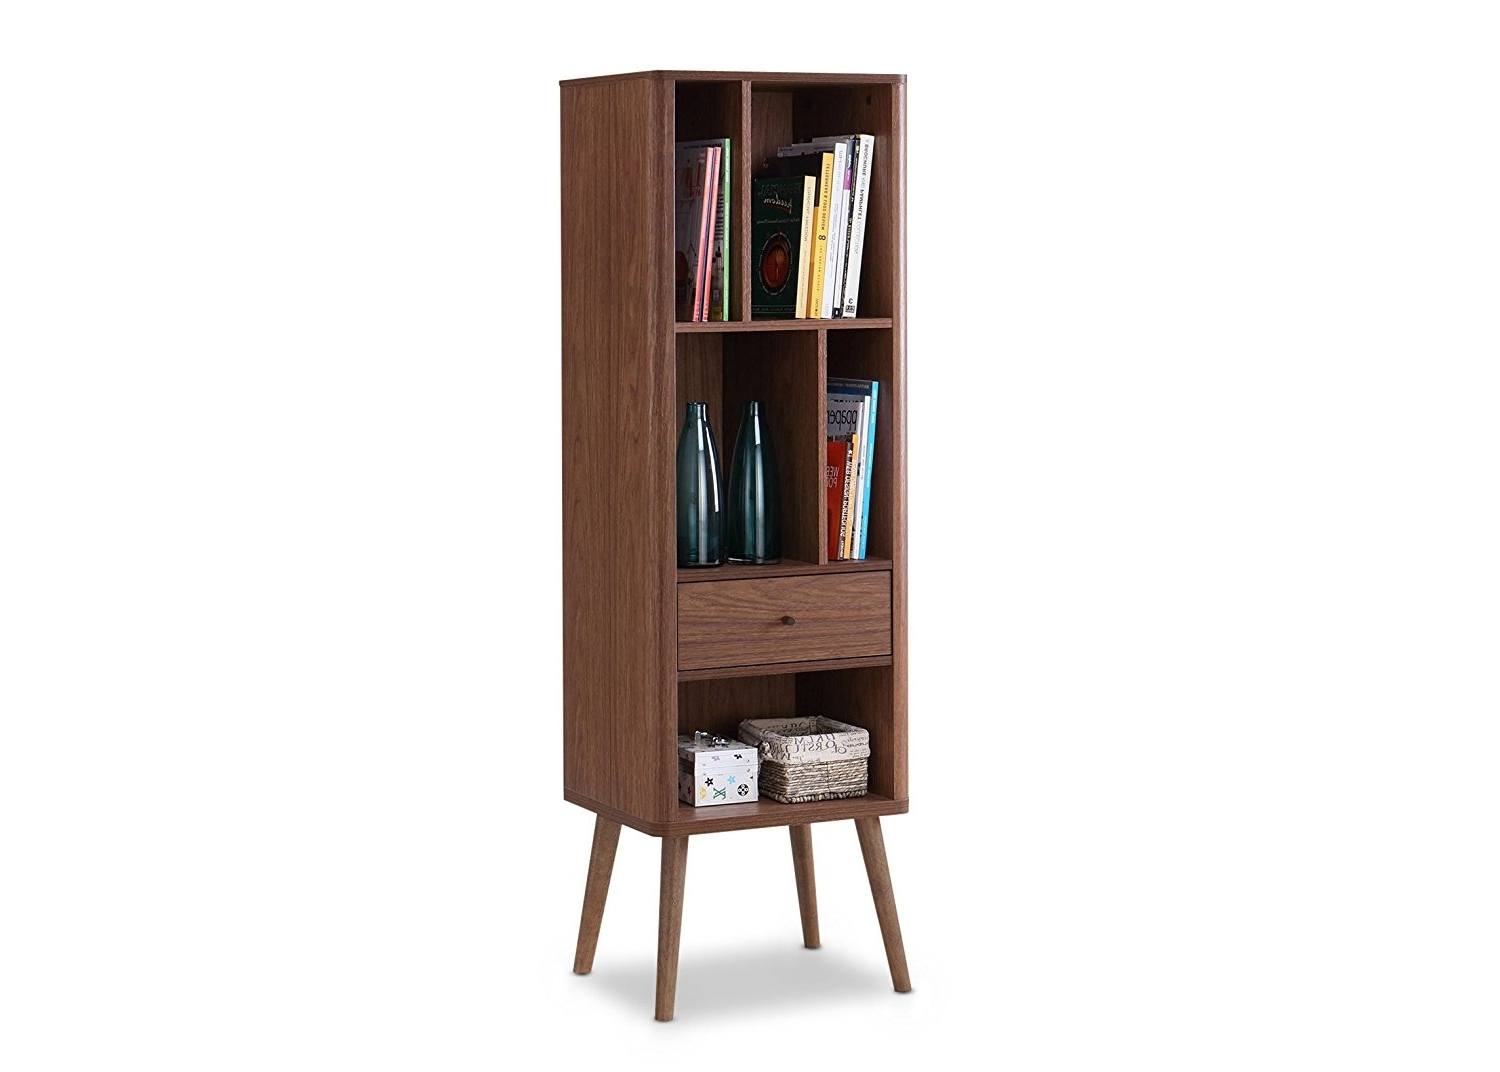 Amazon: Baxton Furniture Studios Ellingham Mid Century Retro Pertaining To Best And Newest Midcentury Bookcases (View 3 of 15)